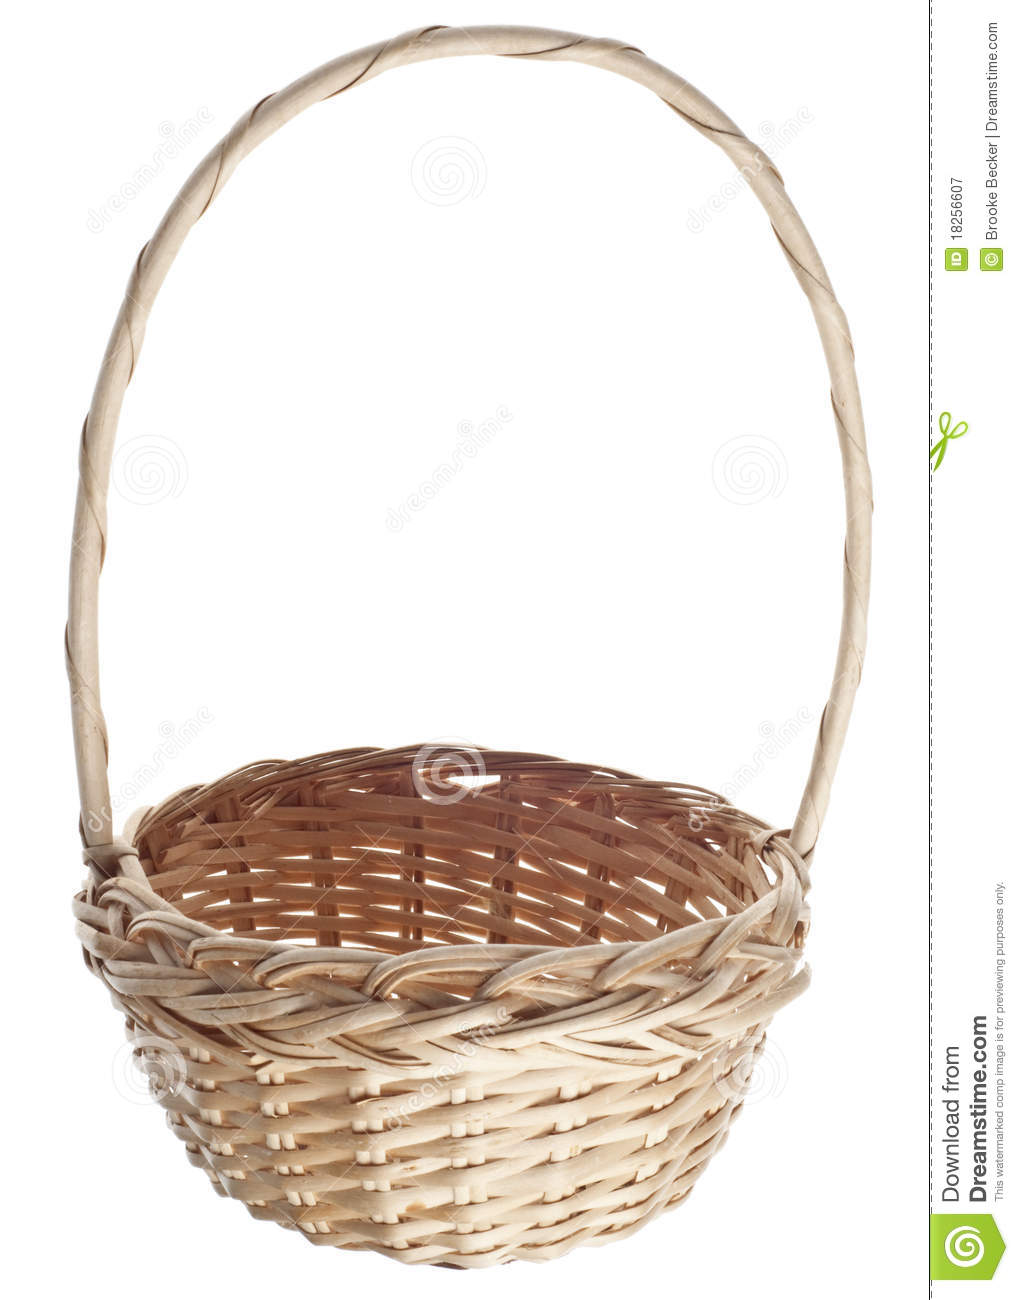 Empty Easter Basket Stock Image Of Concept Photography